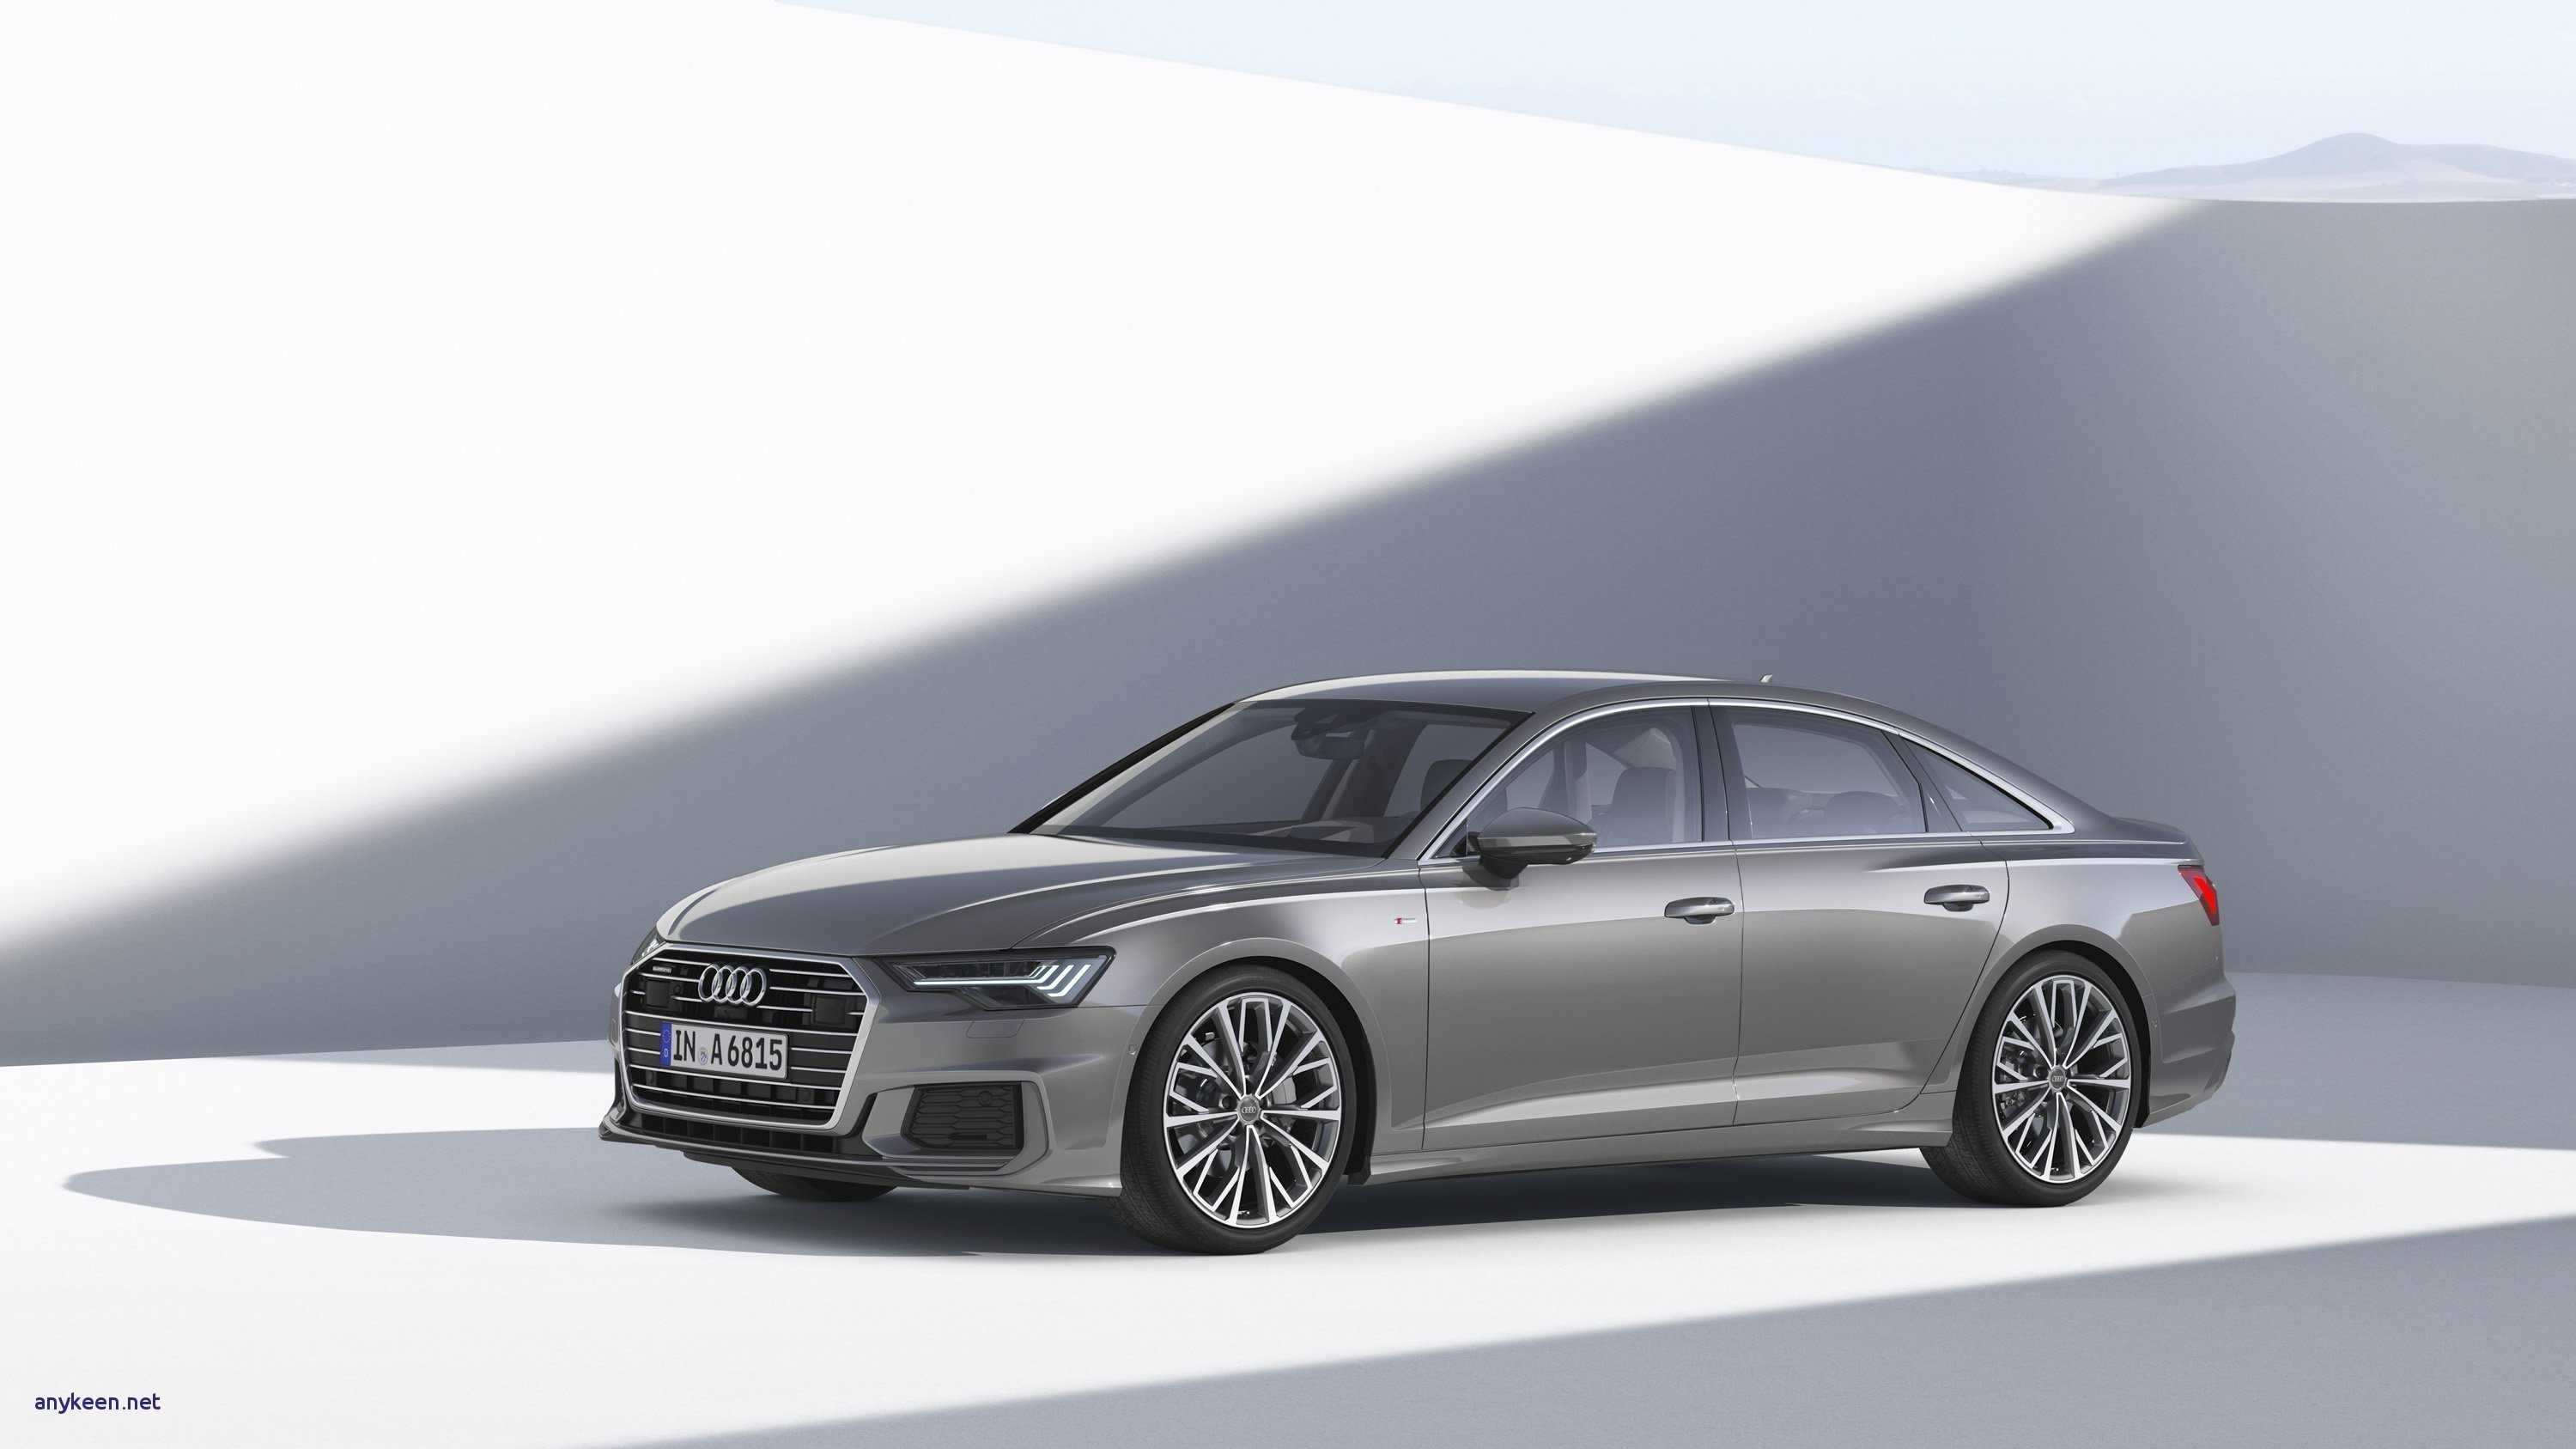 31 The 2020 Audi A6 Comes History